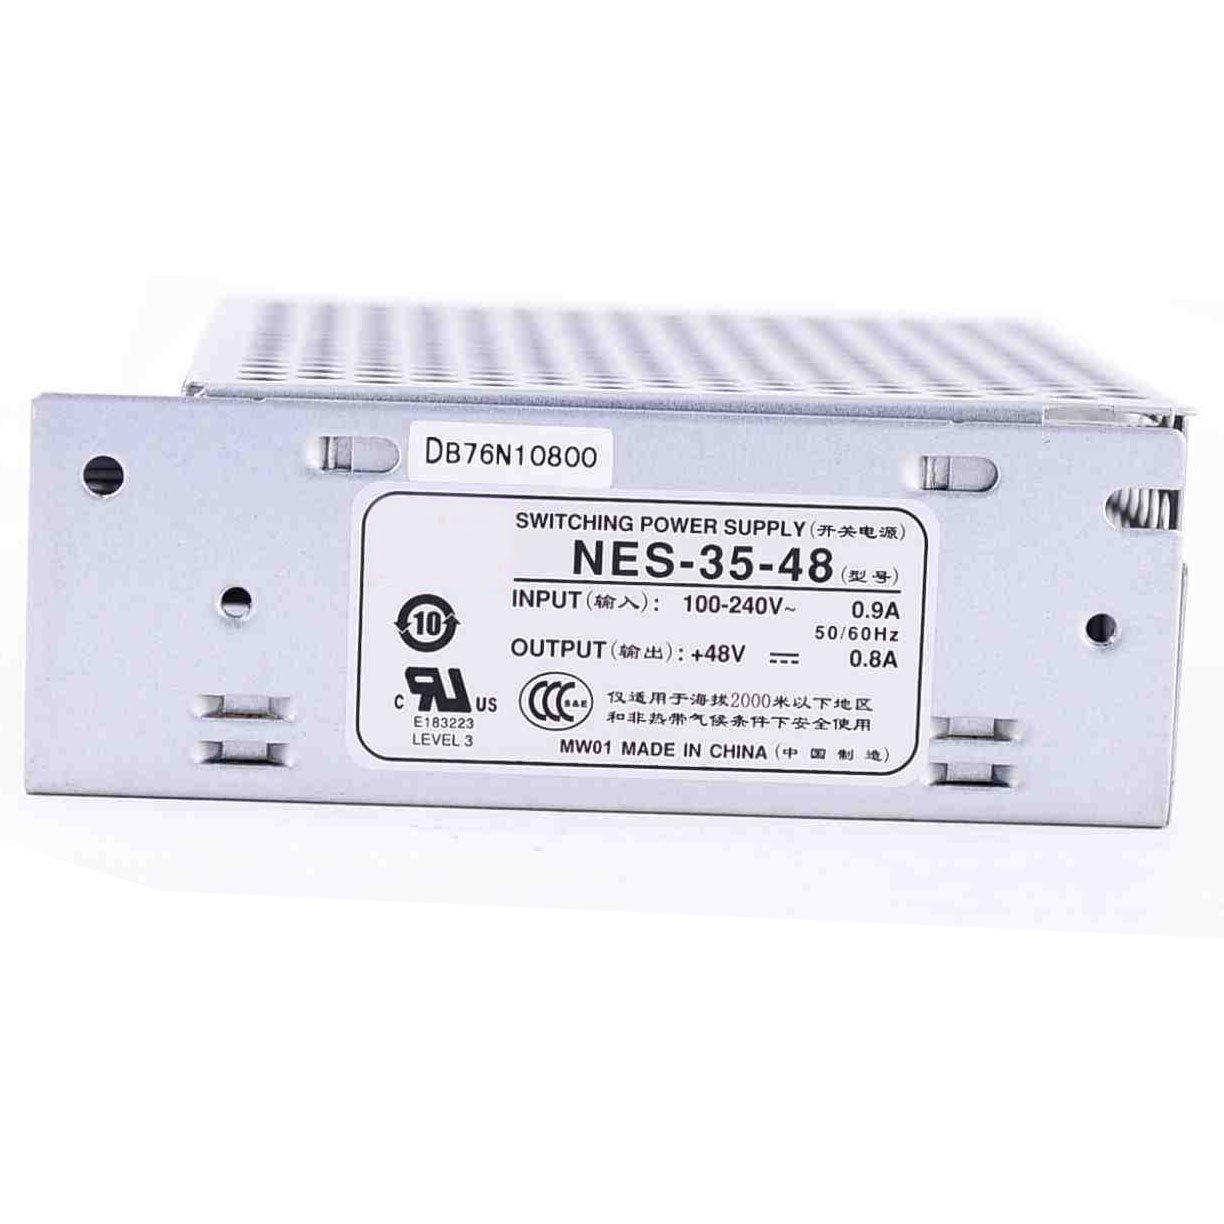 New Switch Power Supply 48V 0.57A 25W 99x82x25mm for Mean Well MW MeanWell NES-25-48